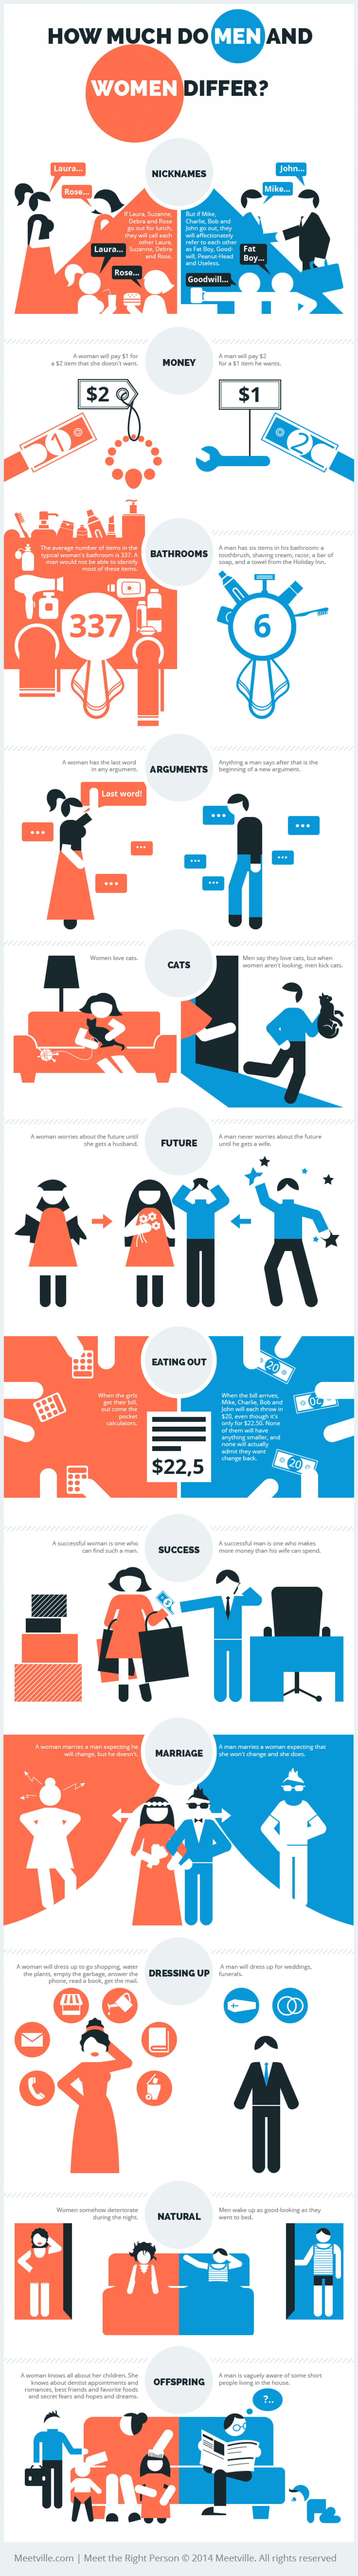 How Much Do Men and Women Differ Infographic